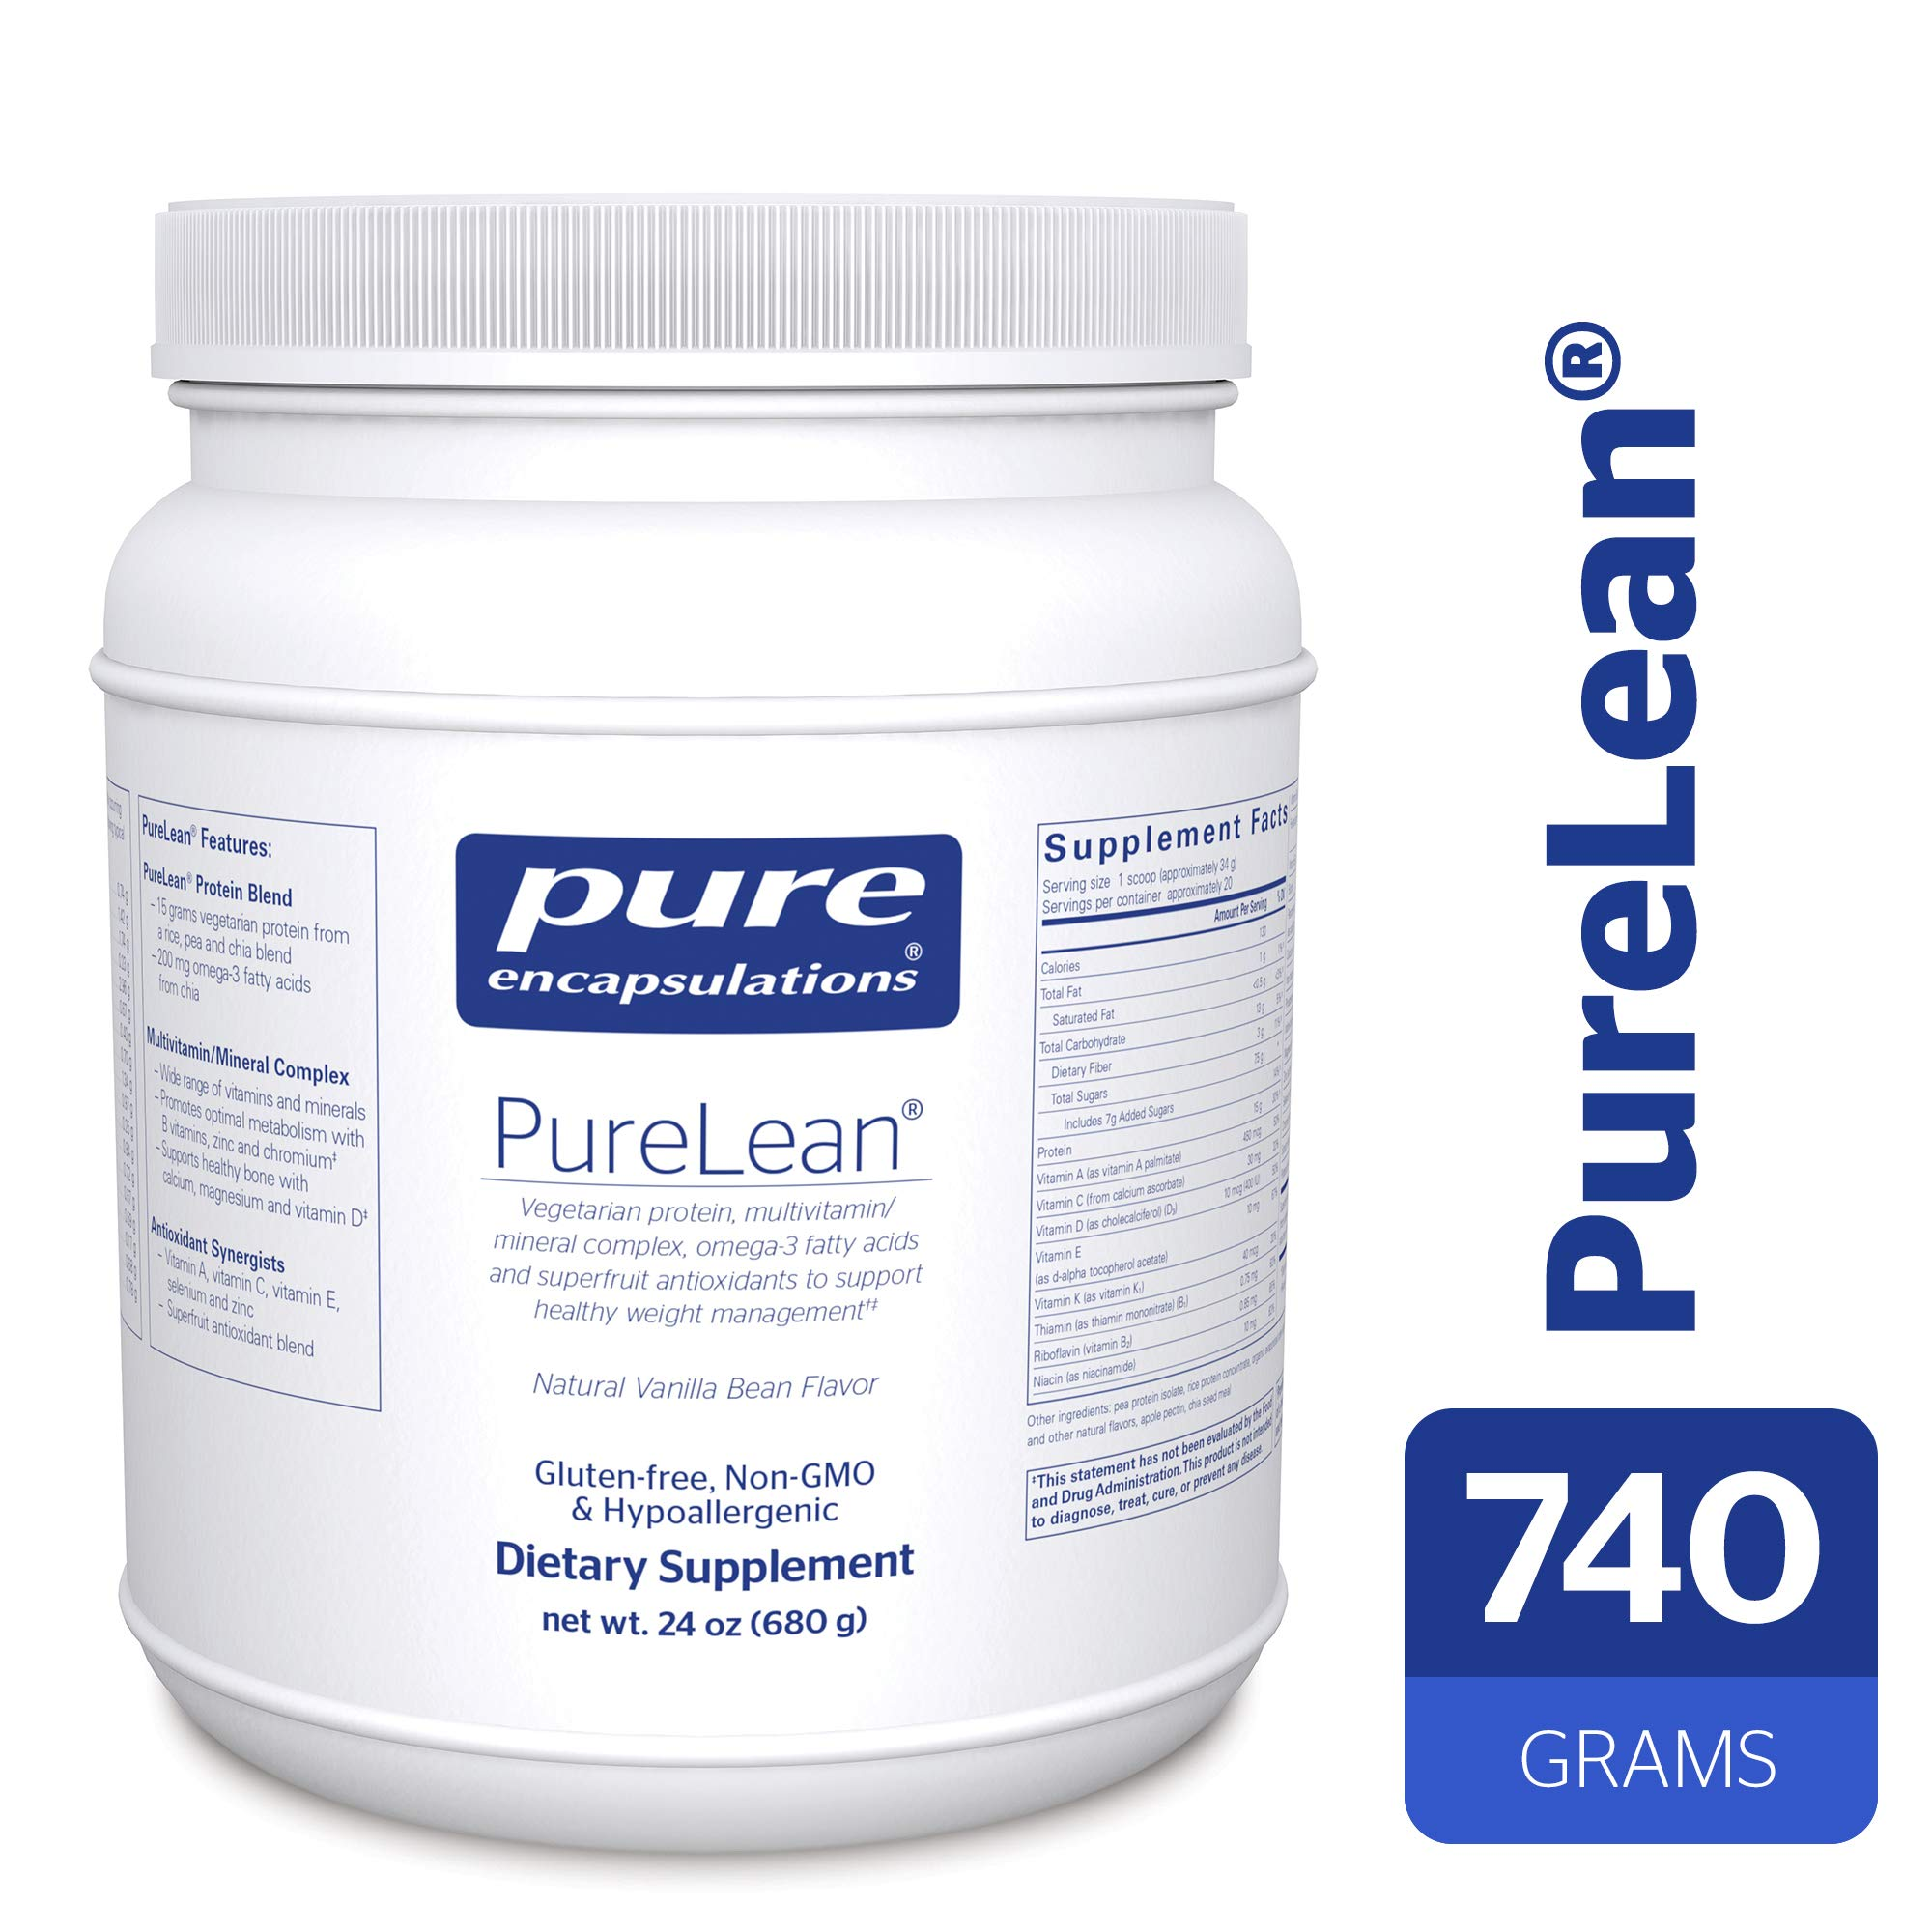 Pure Encapsulations - PureLean - Vegetarian Protein for Healthy Weight Management** - Natural Vanilla Bean Flavor - 680 Grams